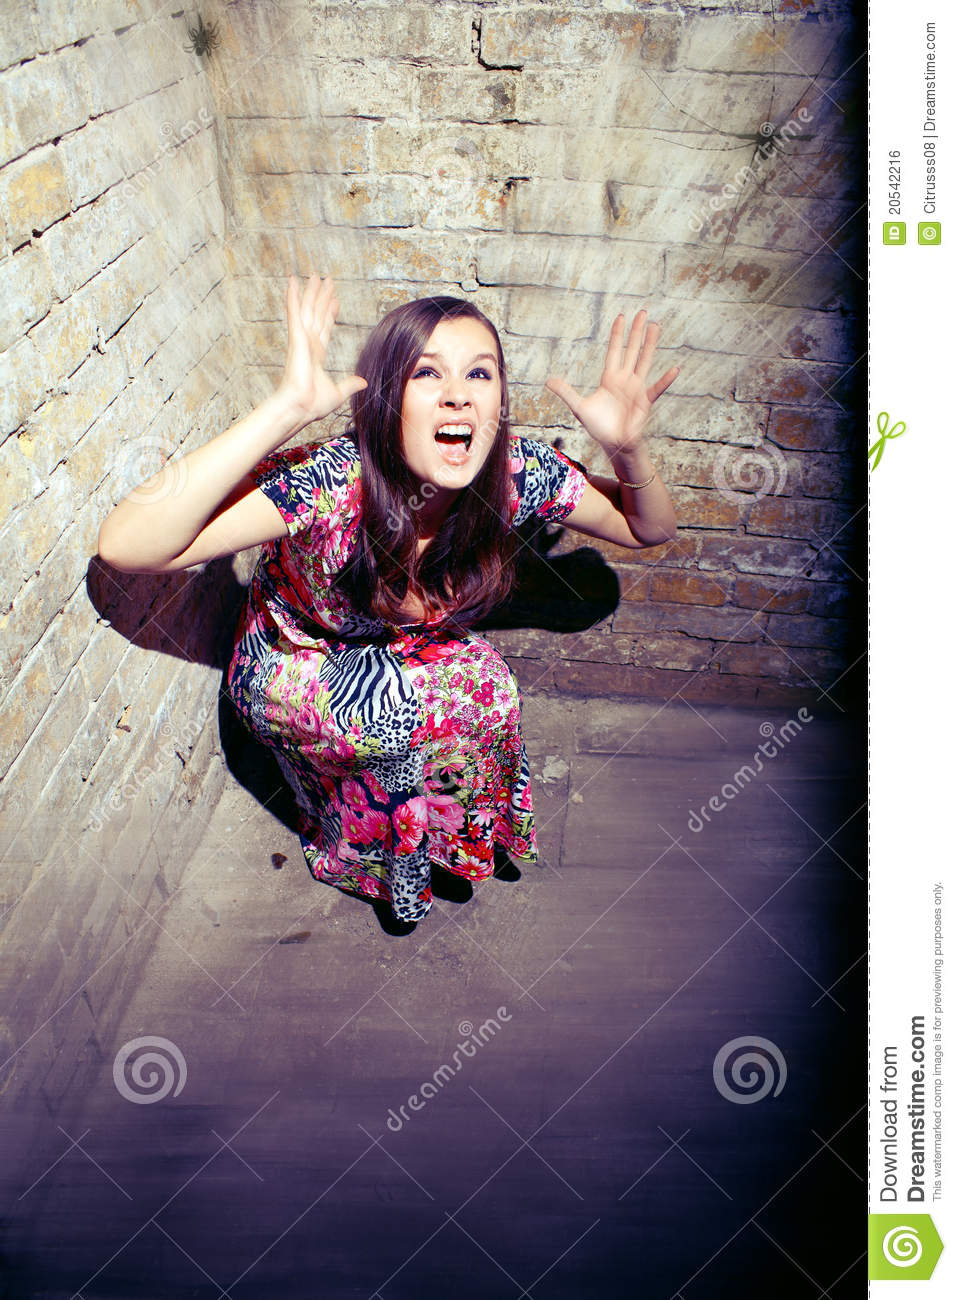 young woman screaming in fear royalty free stock image